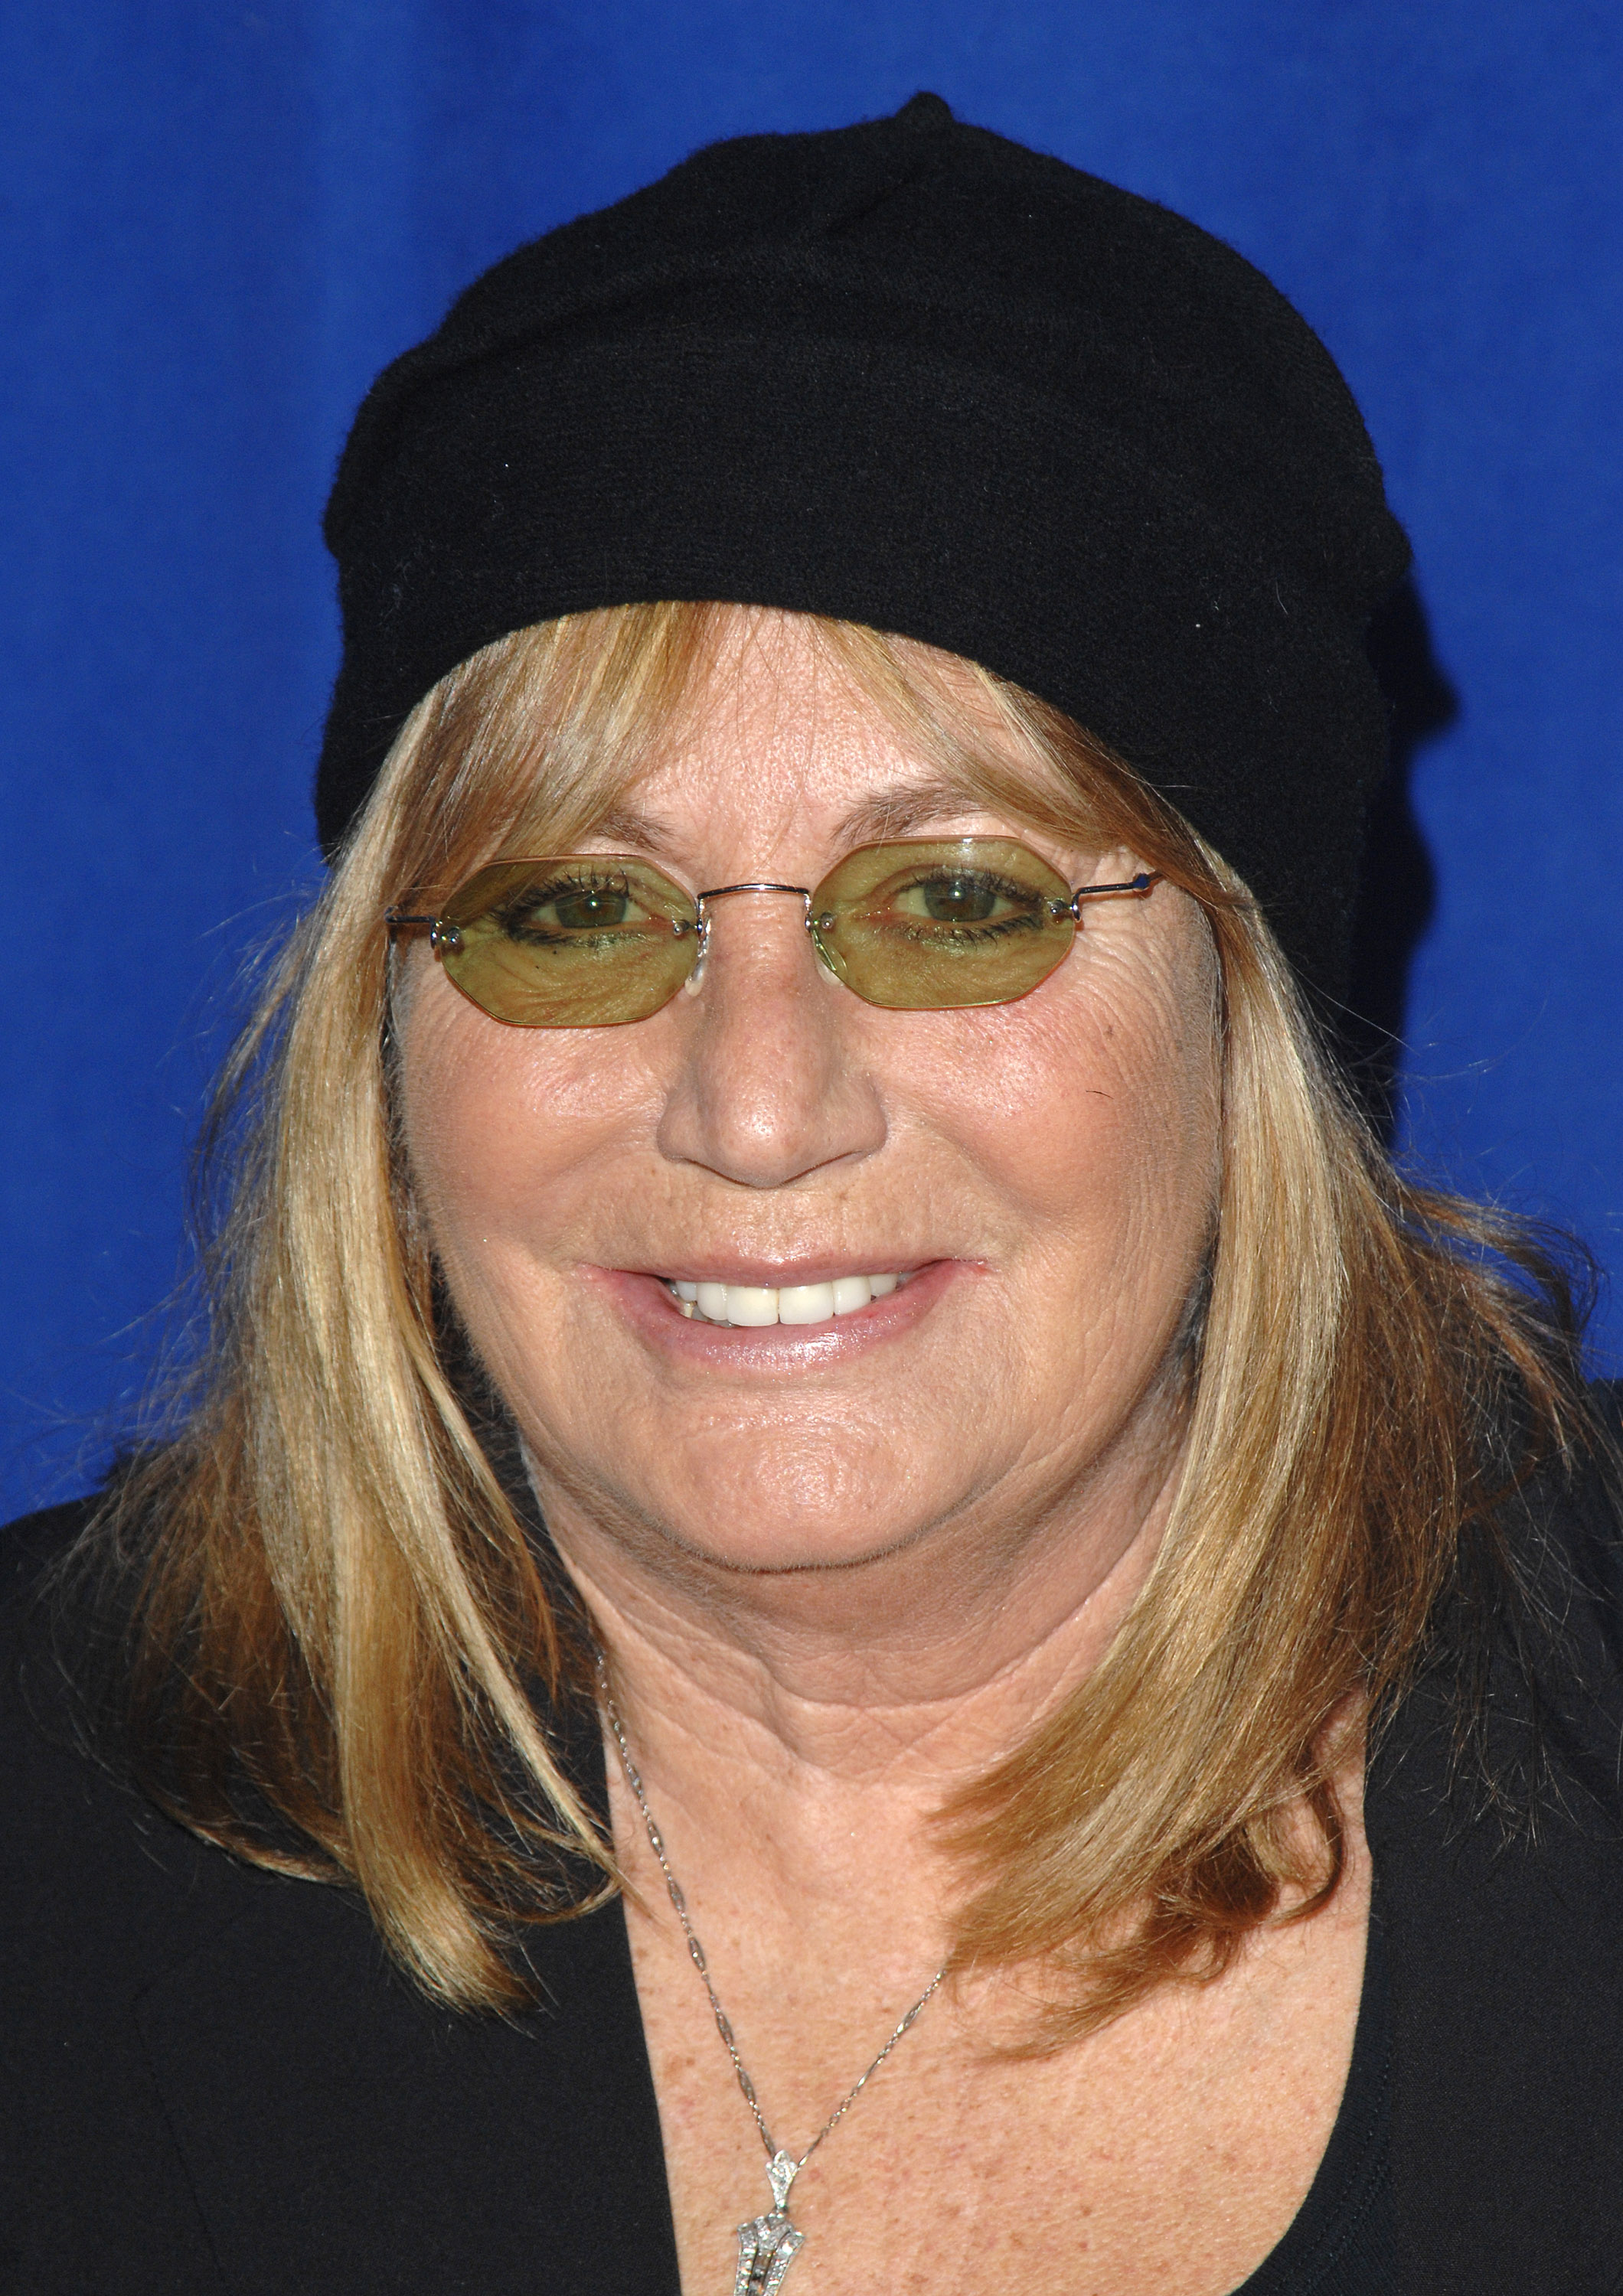 "<div class=""meta image-caption""><div class=""origin-logo origin-image ap""><span>AP</span></div><span class=""caption-text"">Penny Marshall, a director known for films like ''Big'' and ''A League of Their Own,'' died on Dec. 17, 2018. She was 75. (Evan Agostini/Invision/AP)</span></div>"